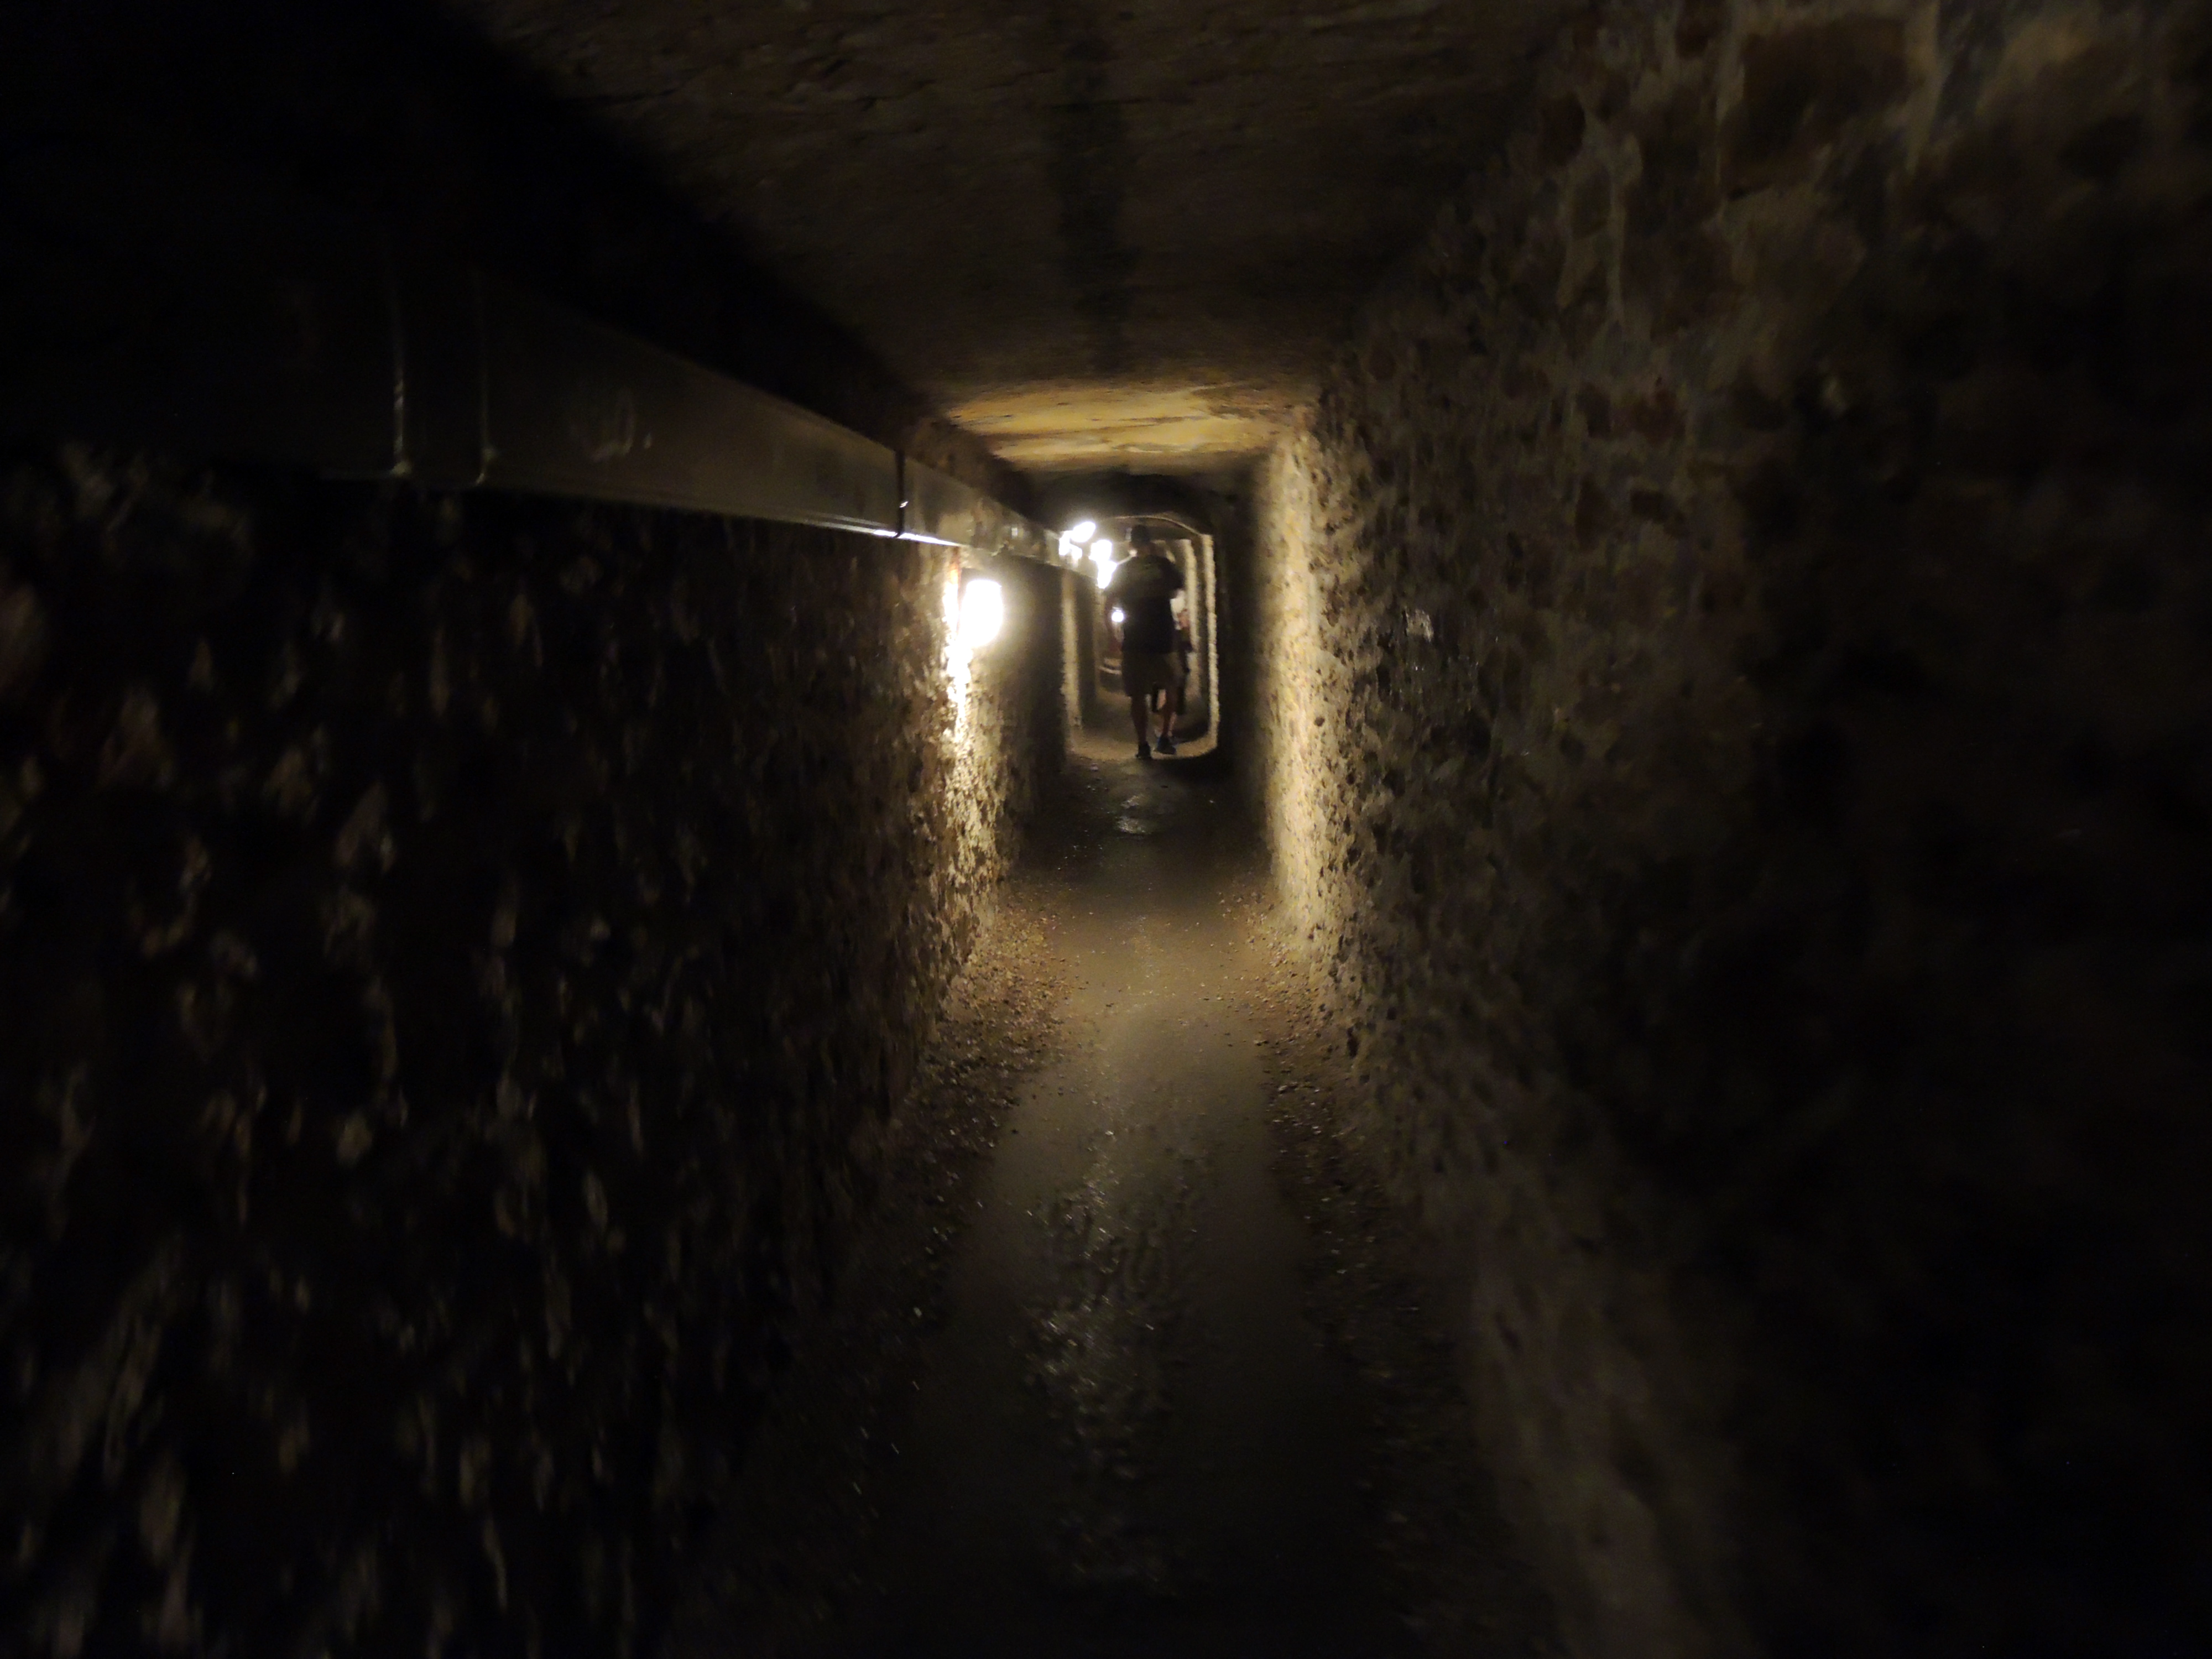 The Catacombs route is 1,500 meters long.